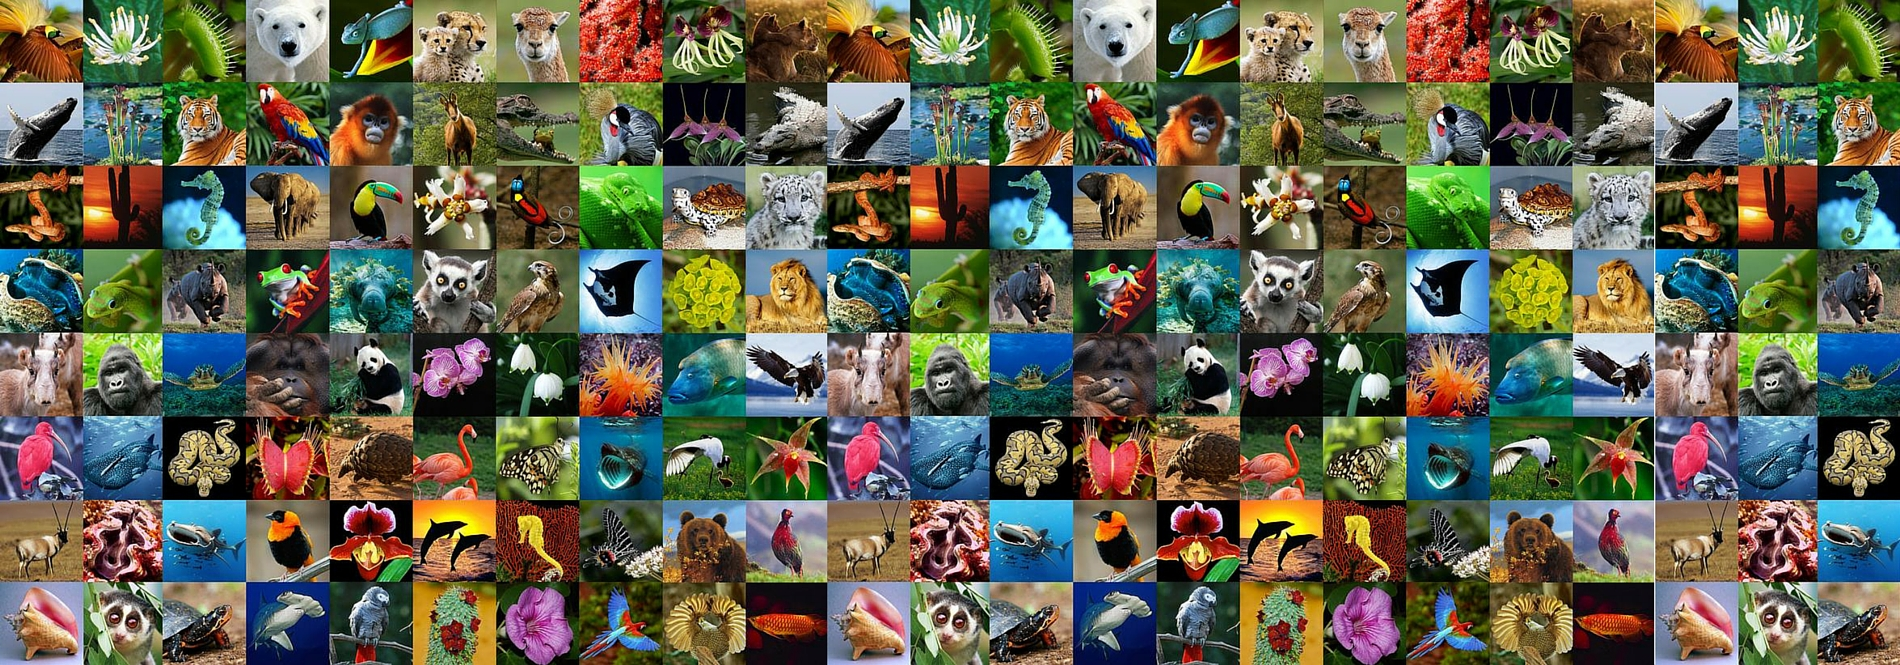 Join the UN campaign to help end wildlife crime on World Wildlife Day